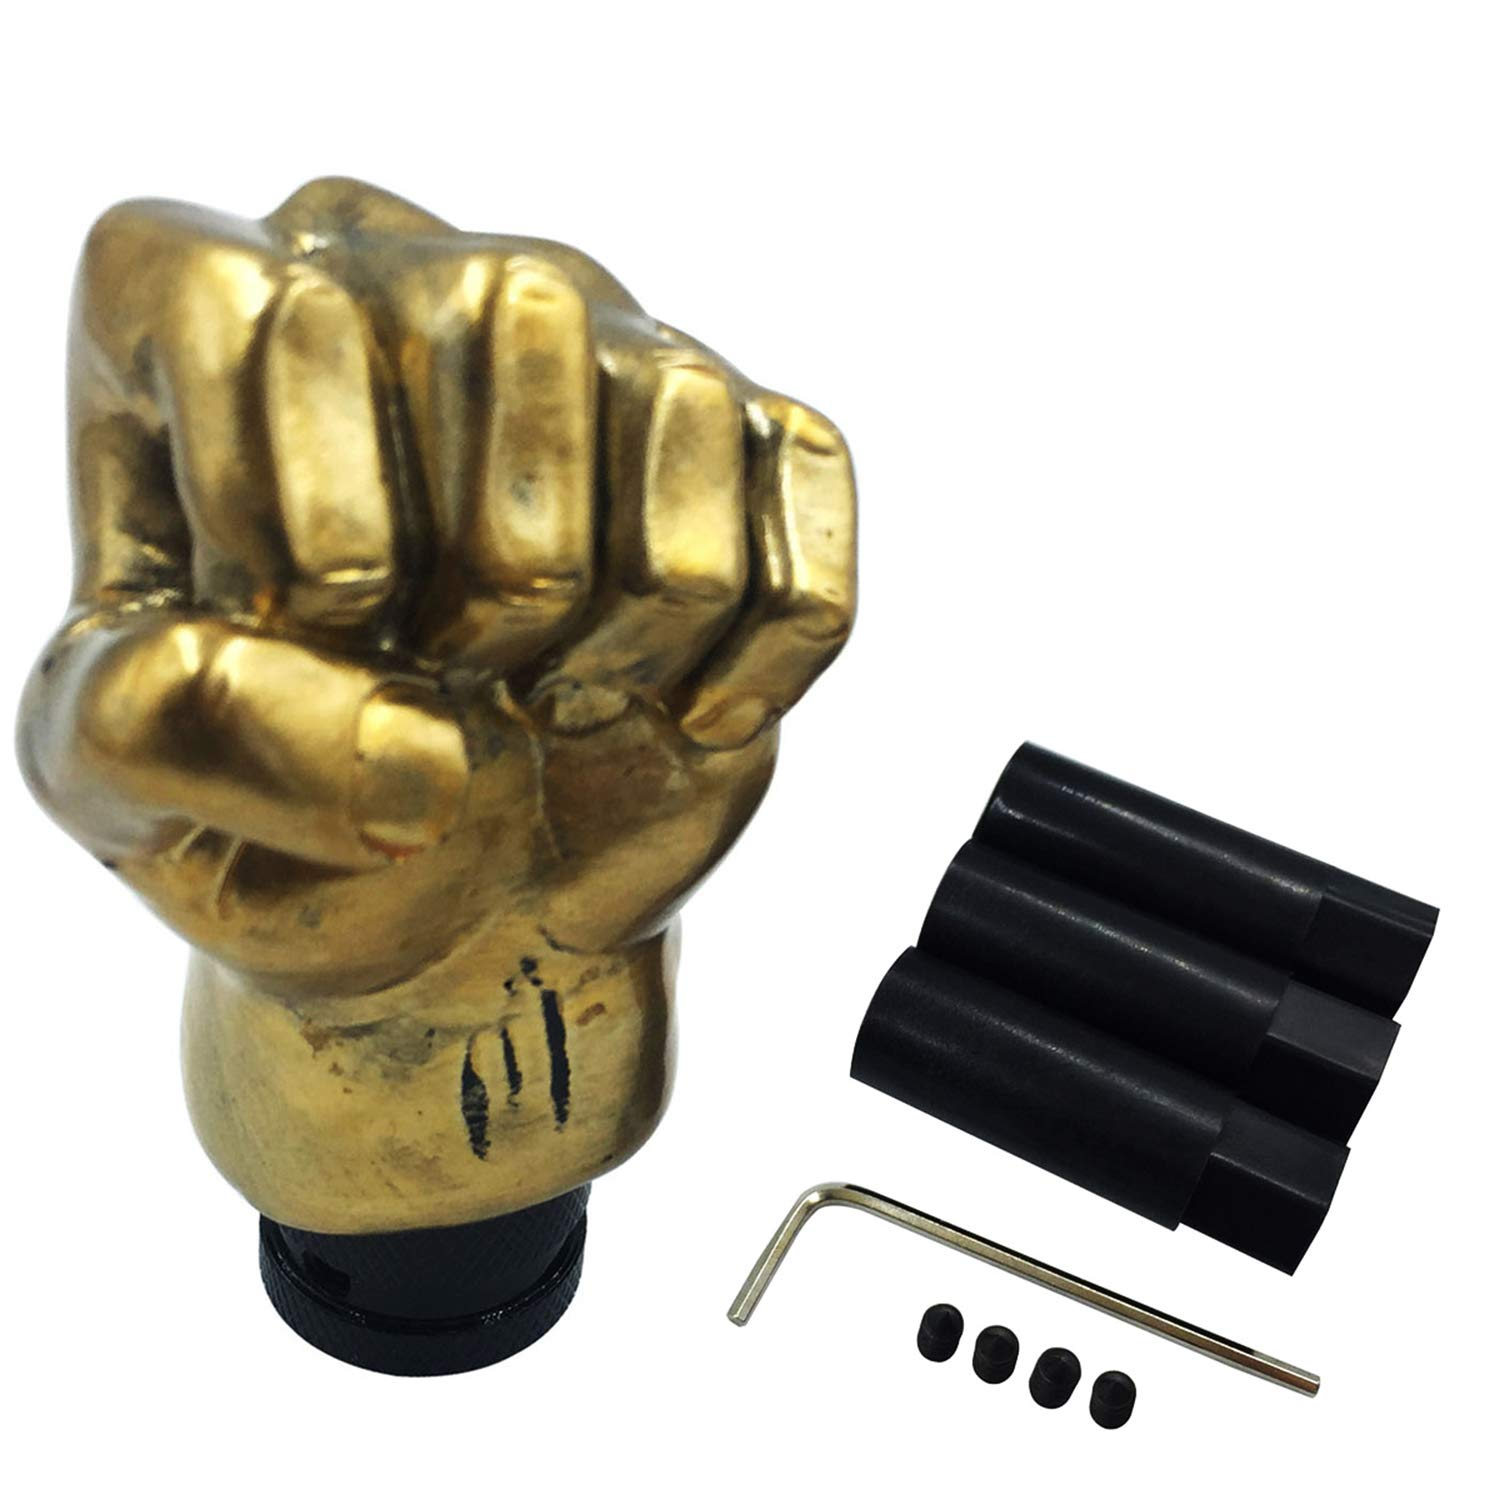 Abfer Gear Shifter Knob Car Stick Shift Lever Fist Shape Fit Most Universal Manual Automatic Vehicle Silver